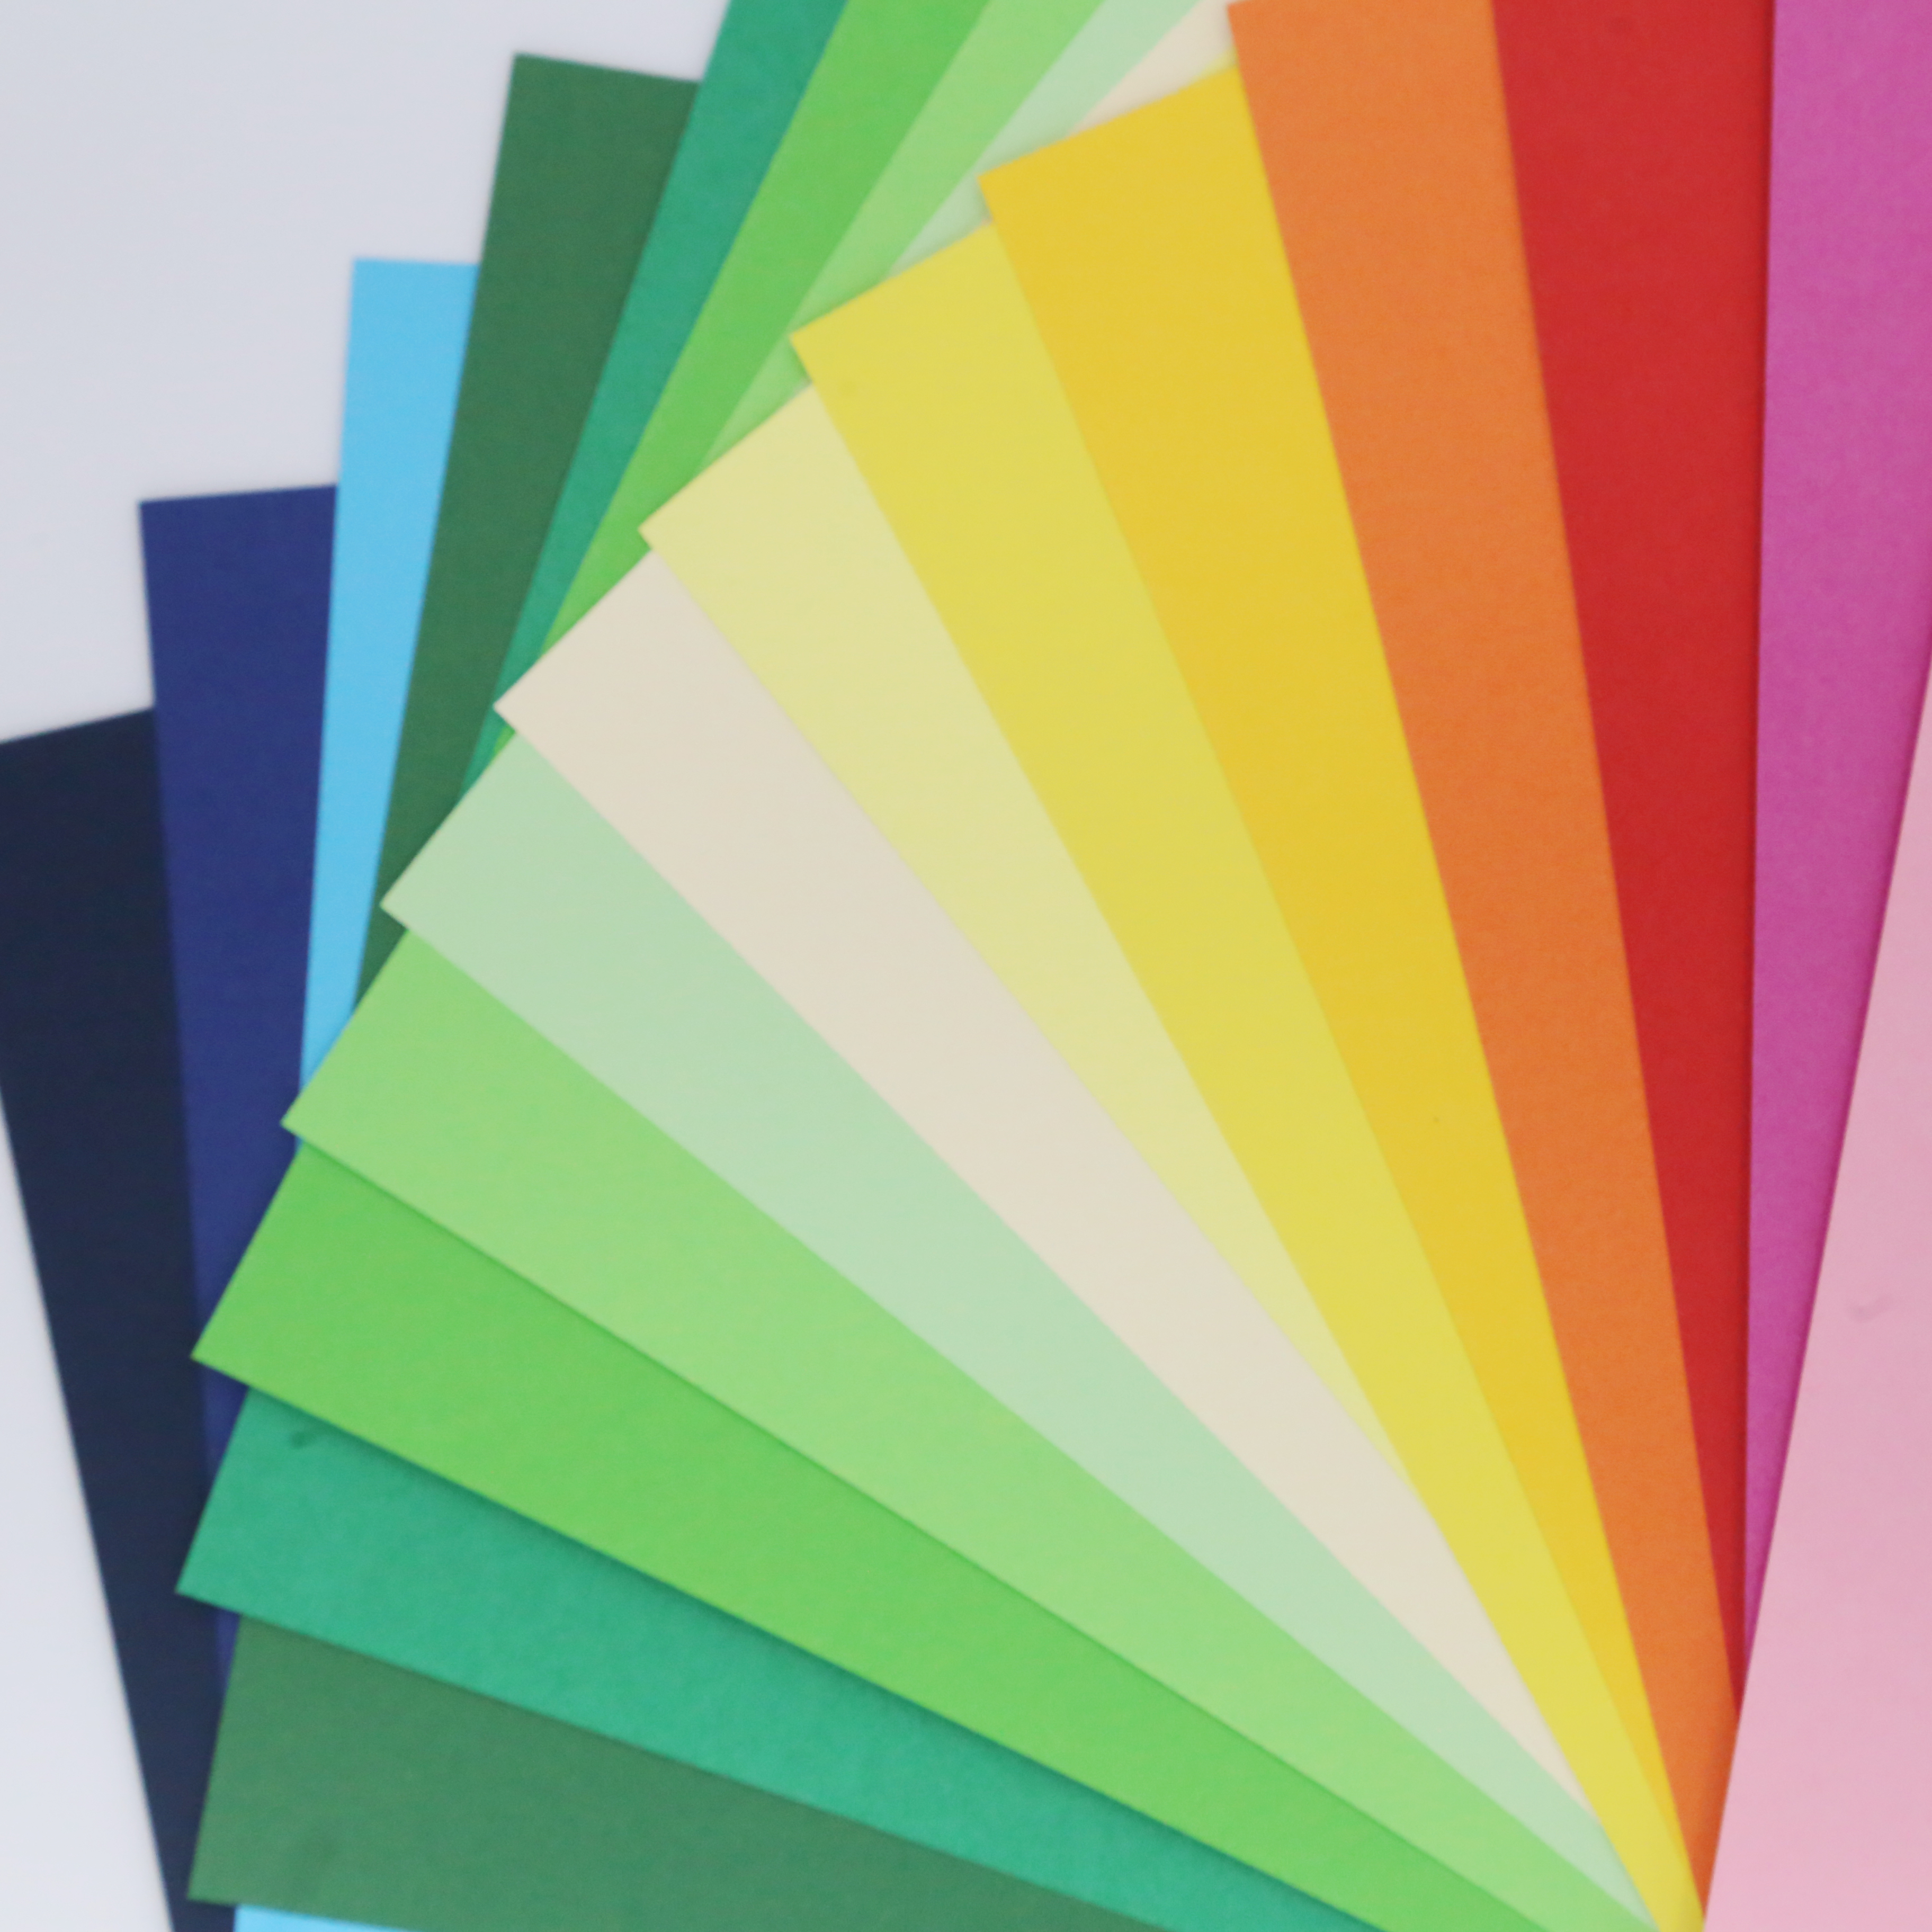 50uds Card Craft's Sheet Thick Paper Colored Paper A4 180g